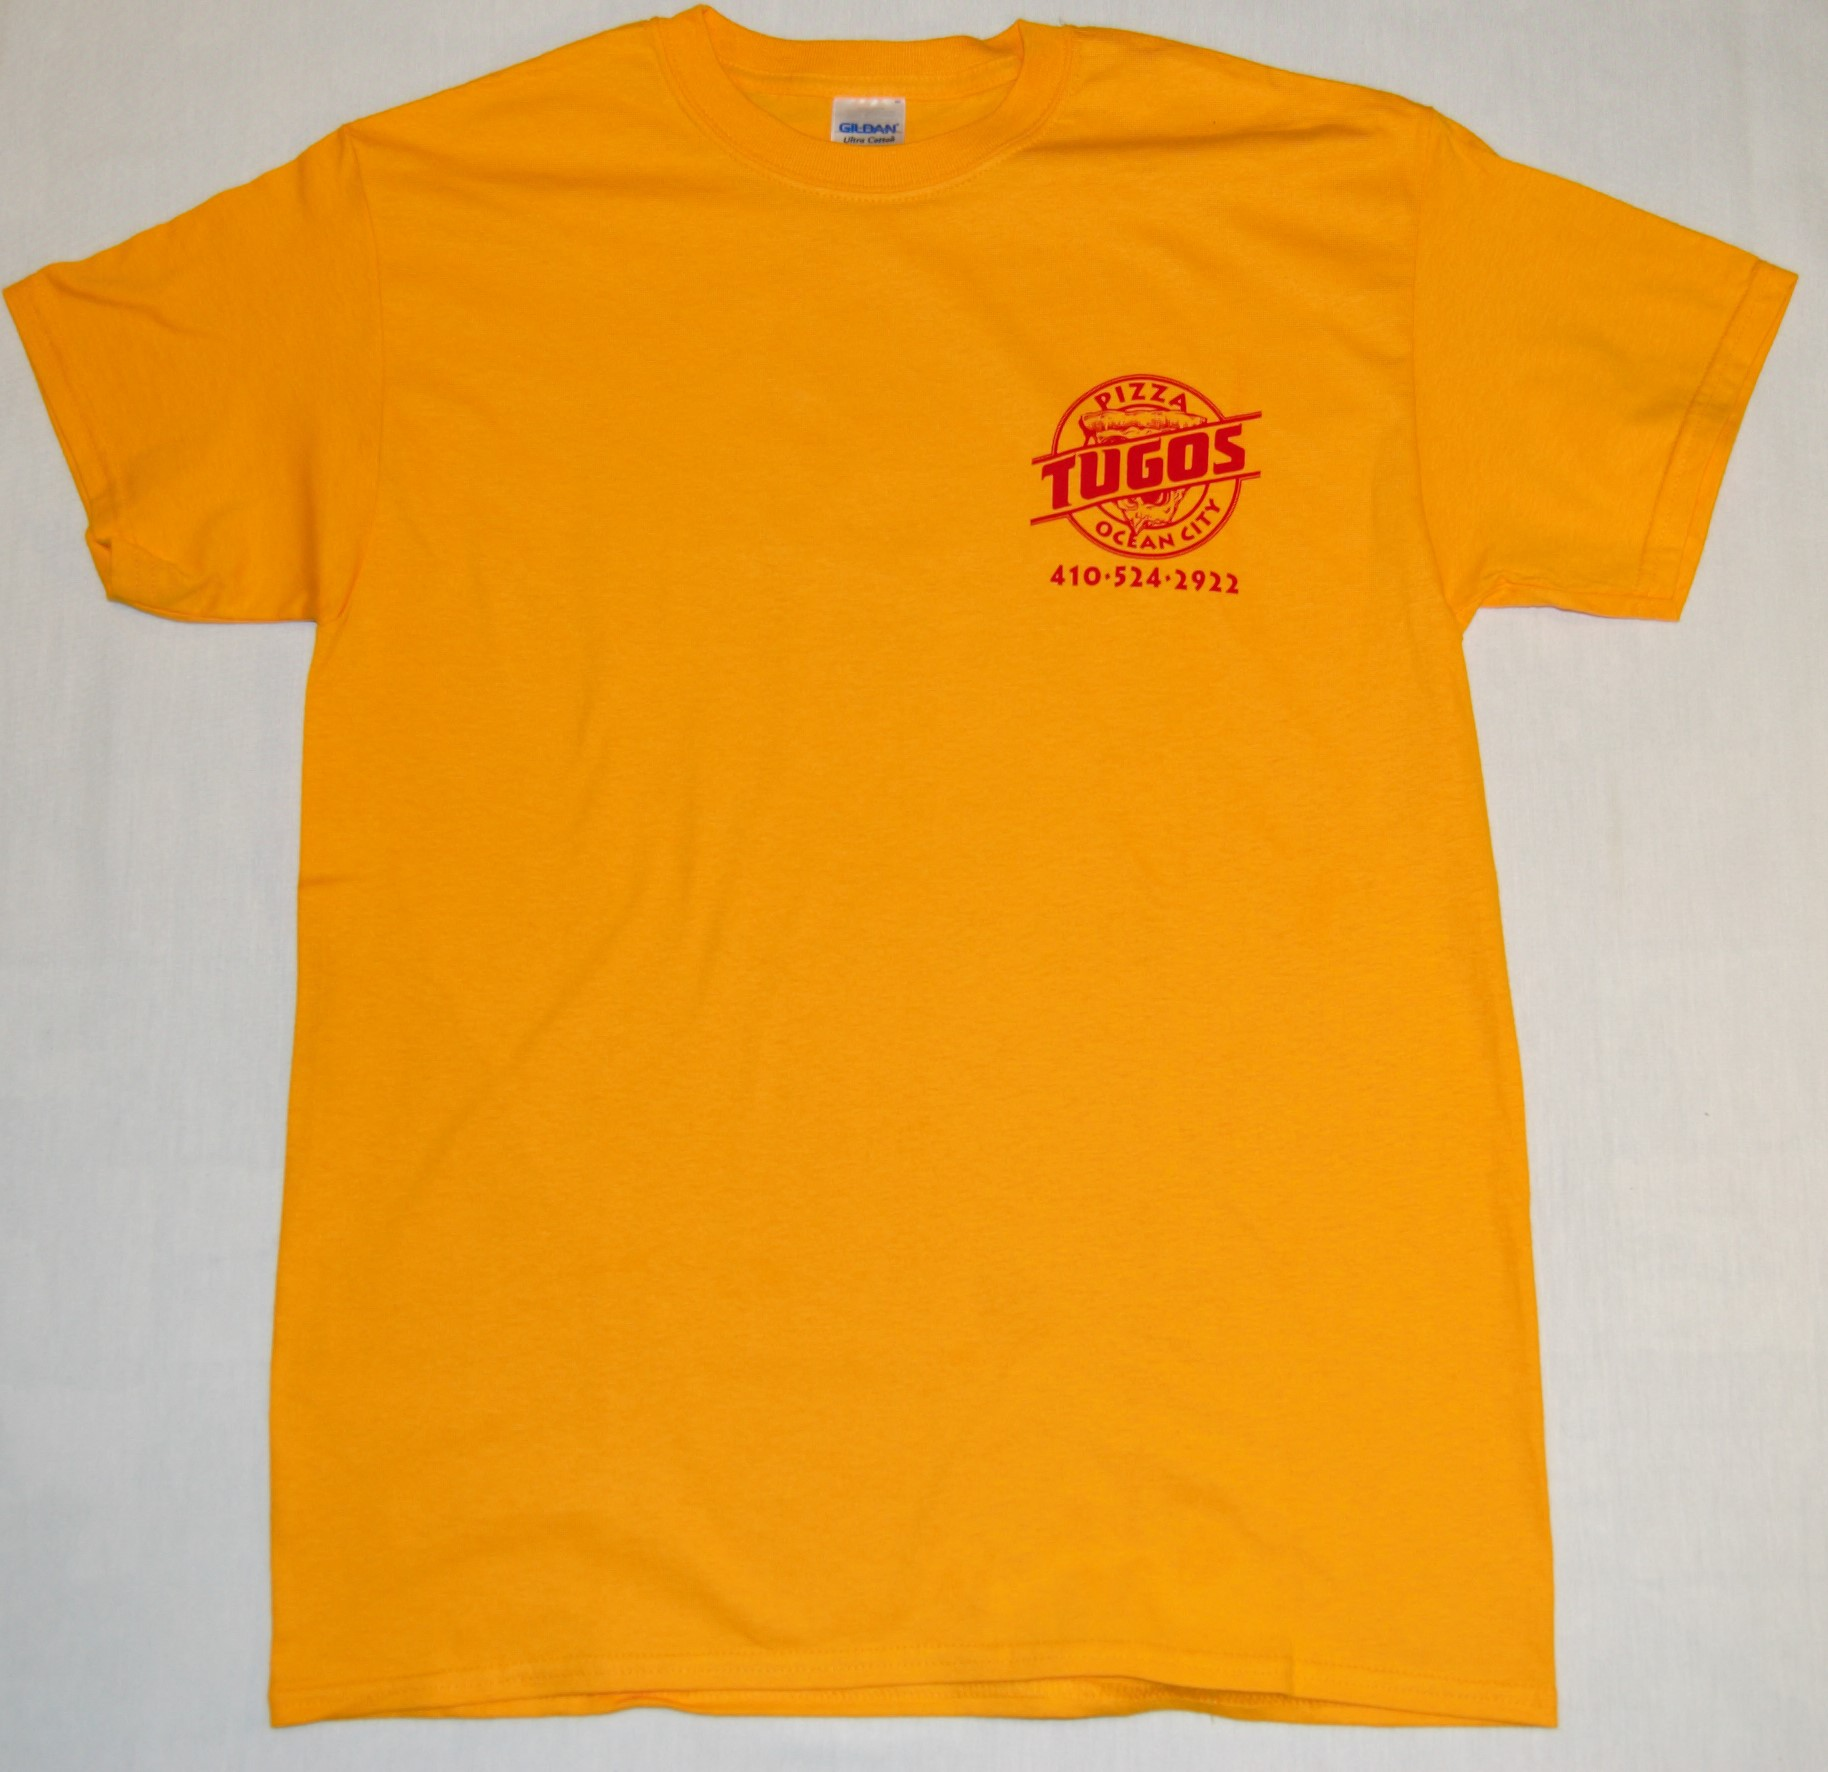 Tugos Crew Shirt Front